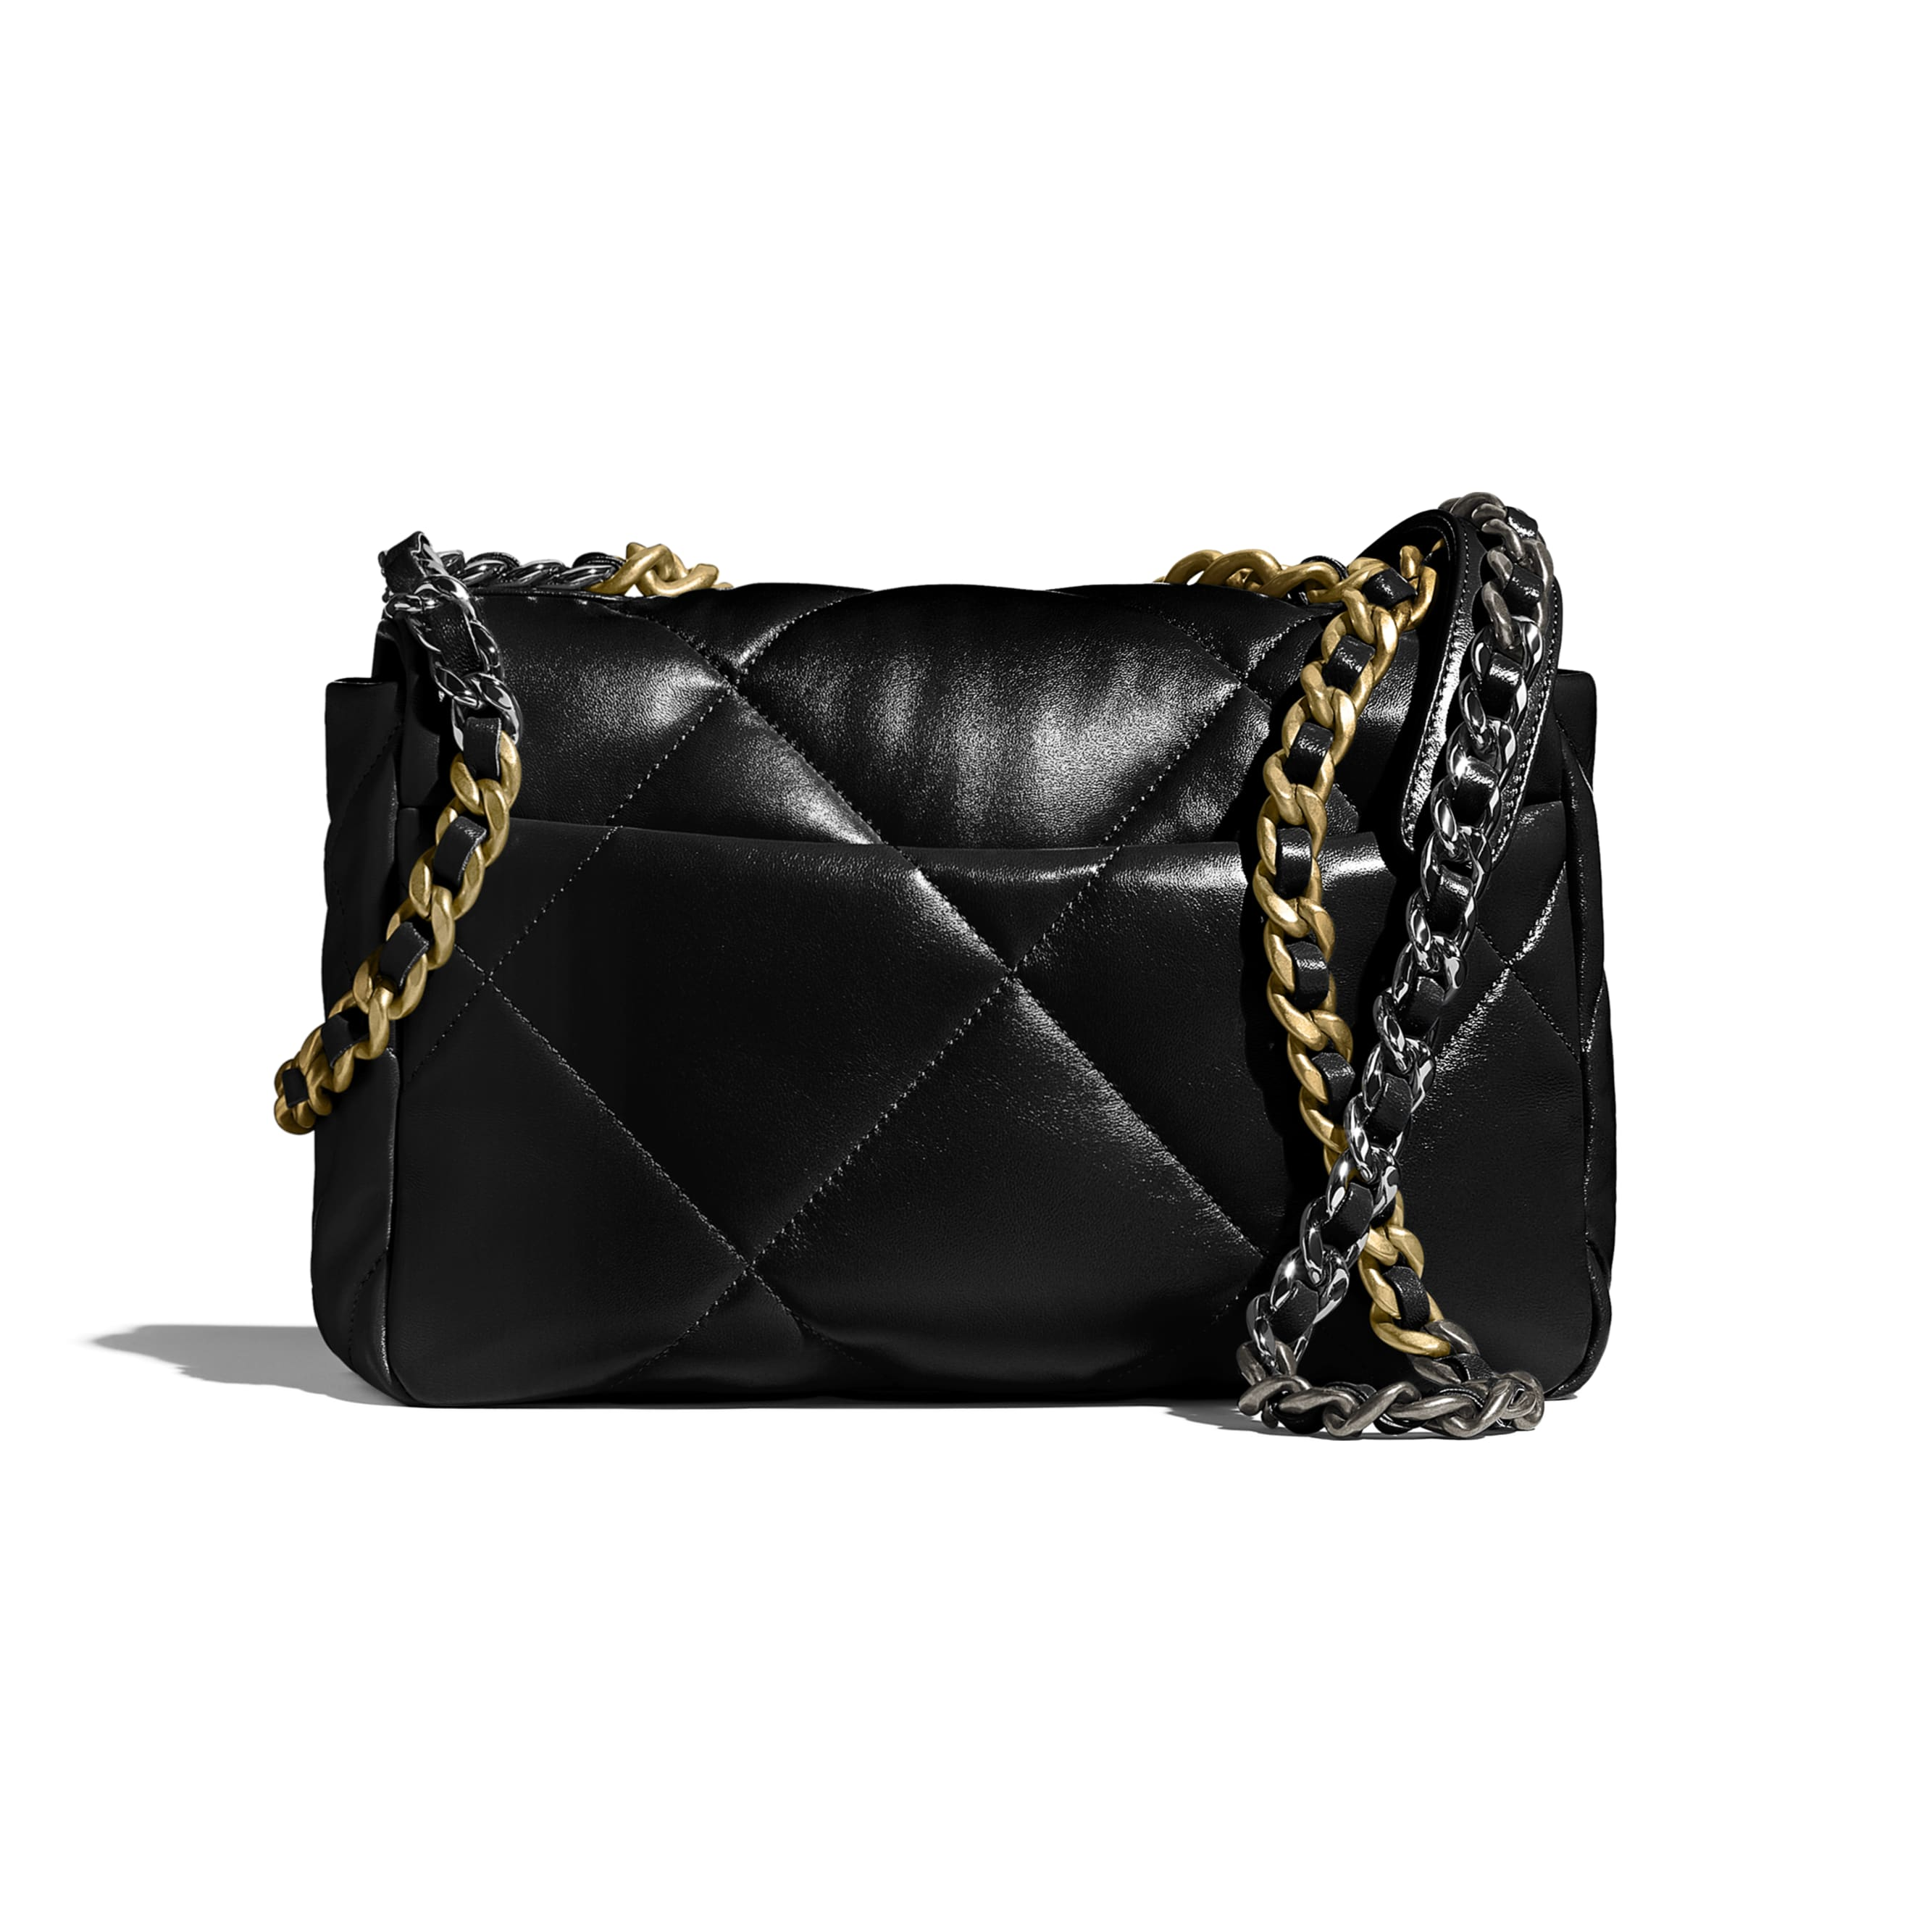 CHANEL 19 Flap Bag - Black - Lambskin, Gold-Tone, Silver-Tone & Ruthenium-Finish Metal - CHANEL - Alternative view - see standard sized version